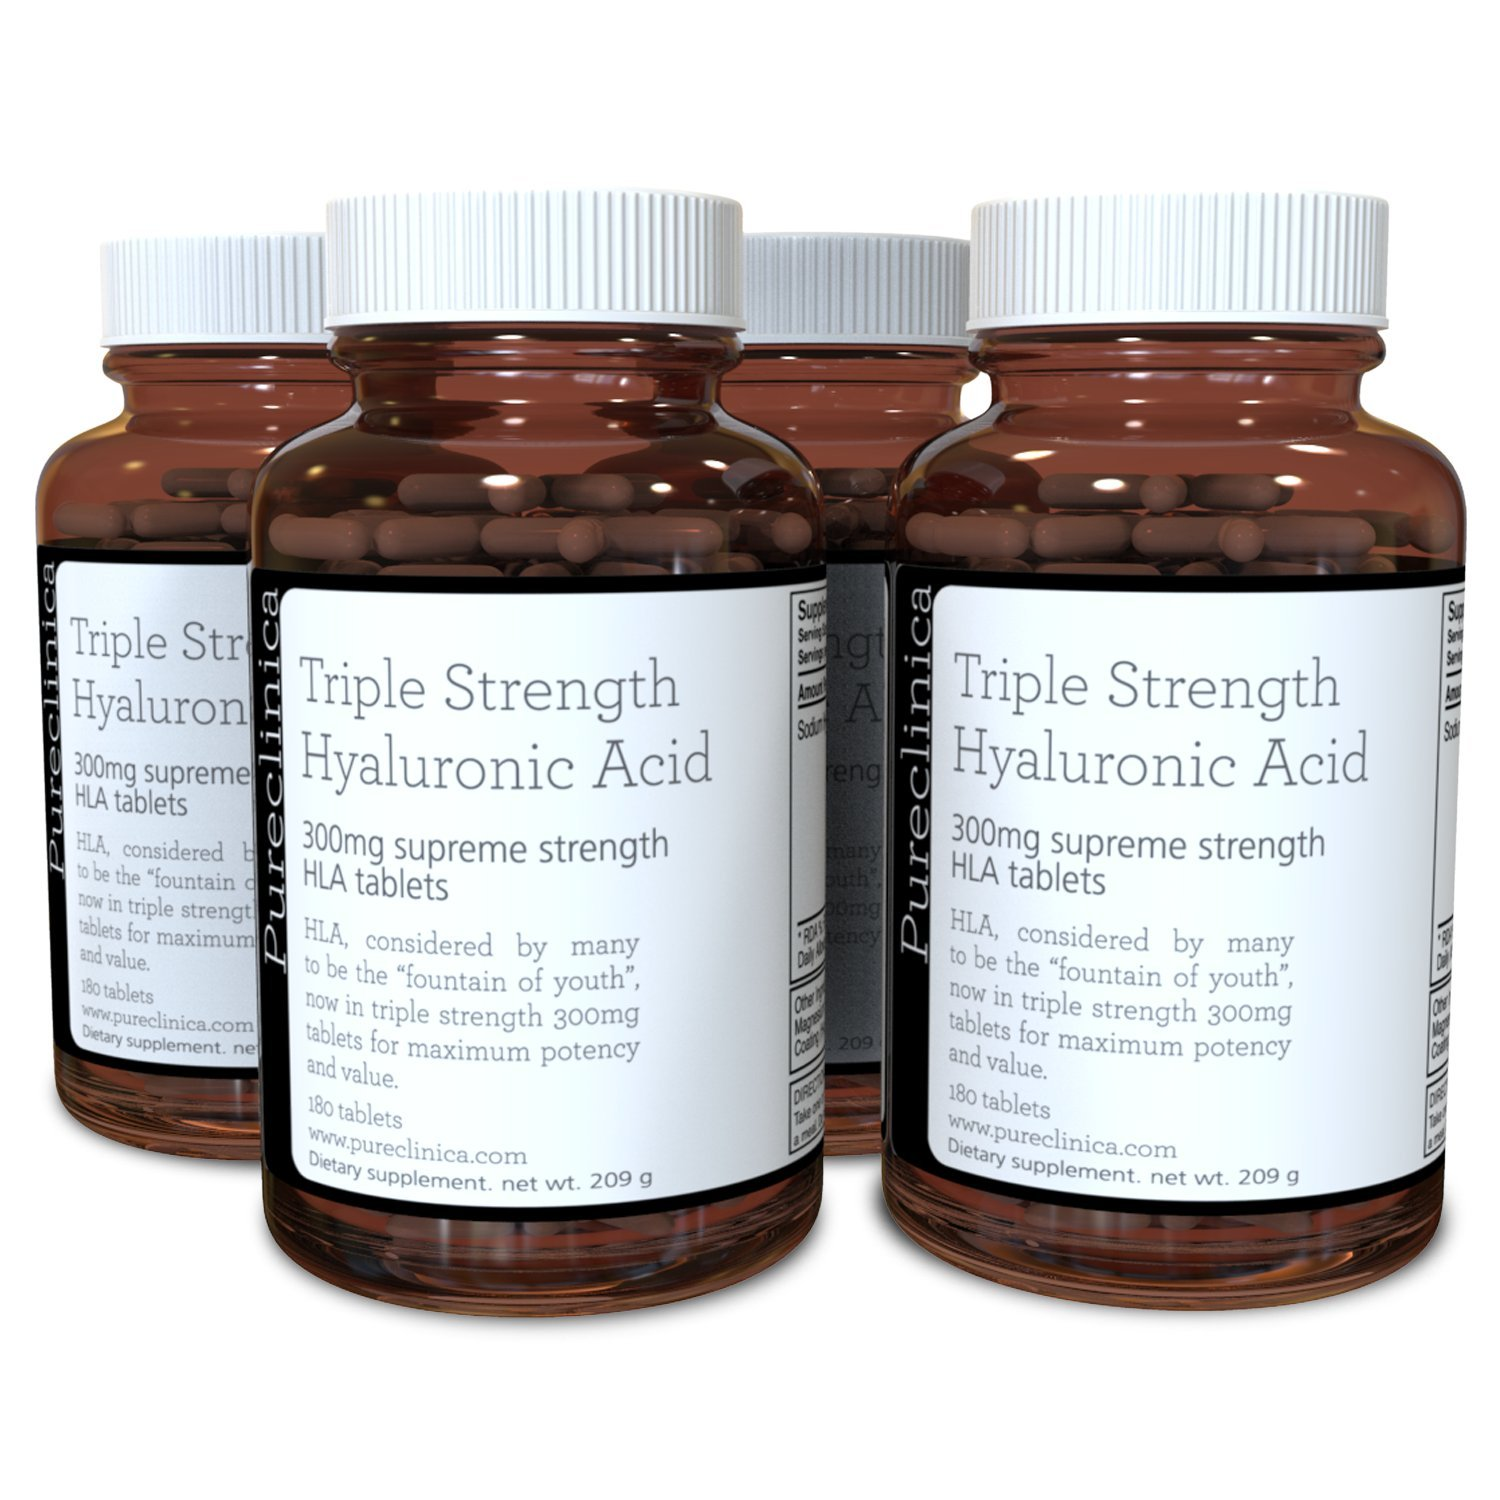 Triple Strength Hyaluronic Acid 300mg x 720 Tablets (4 Bottles with 180 Tablets in Each - 12 Months Supply). 300% Stronger Than Any Other HLA Tablet. SKU: HLA3x4